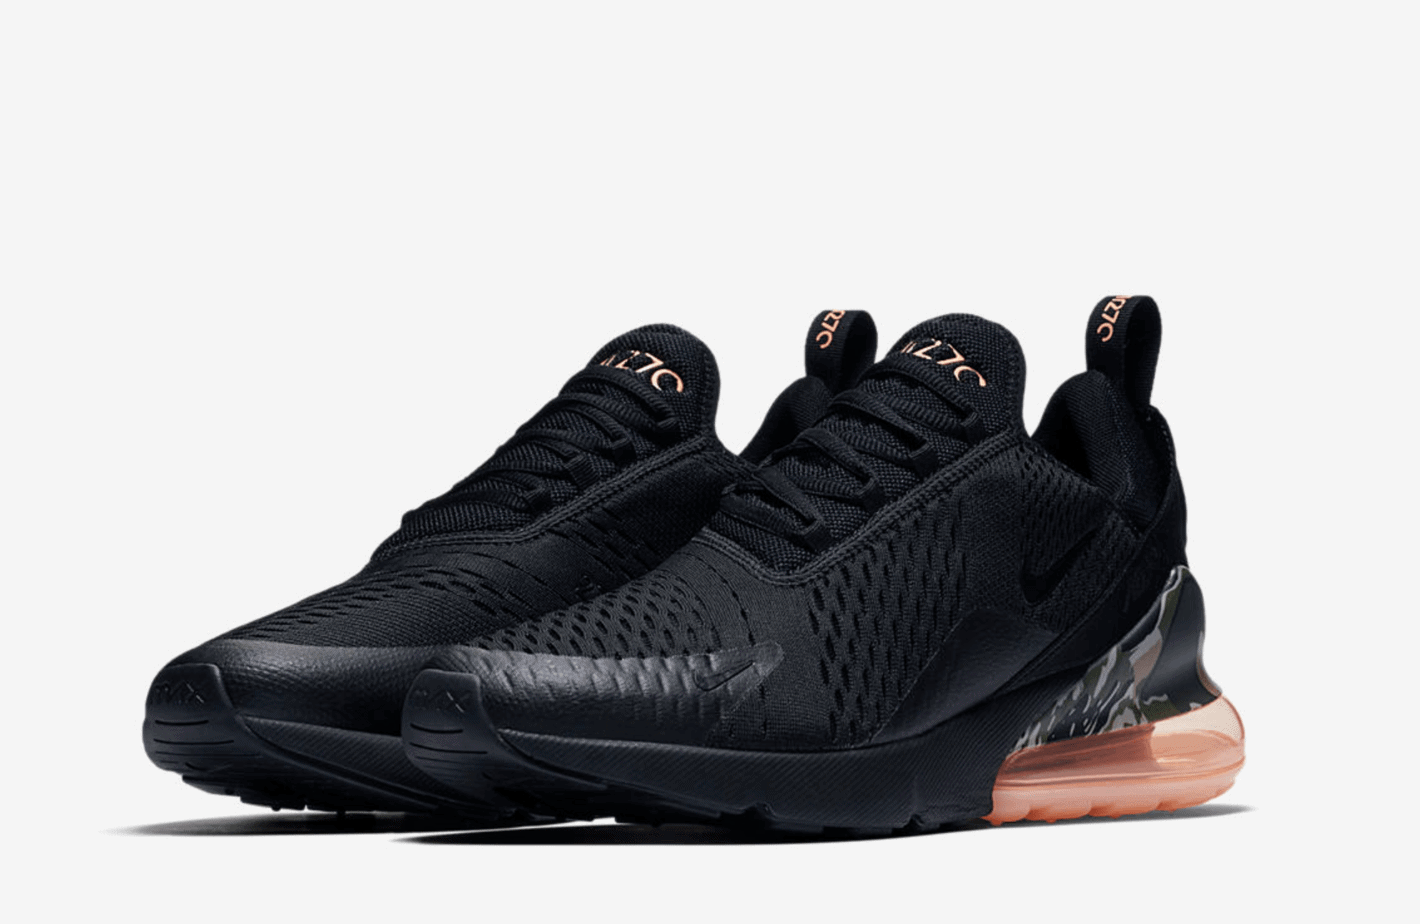 The Nike Air Max 270 is making waves in the lifestyle sneaker market. First released early this year, the new silhouette has brought a completely different ...